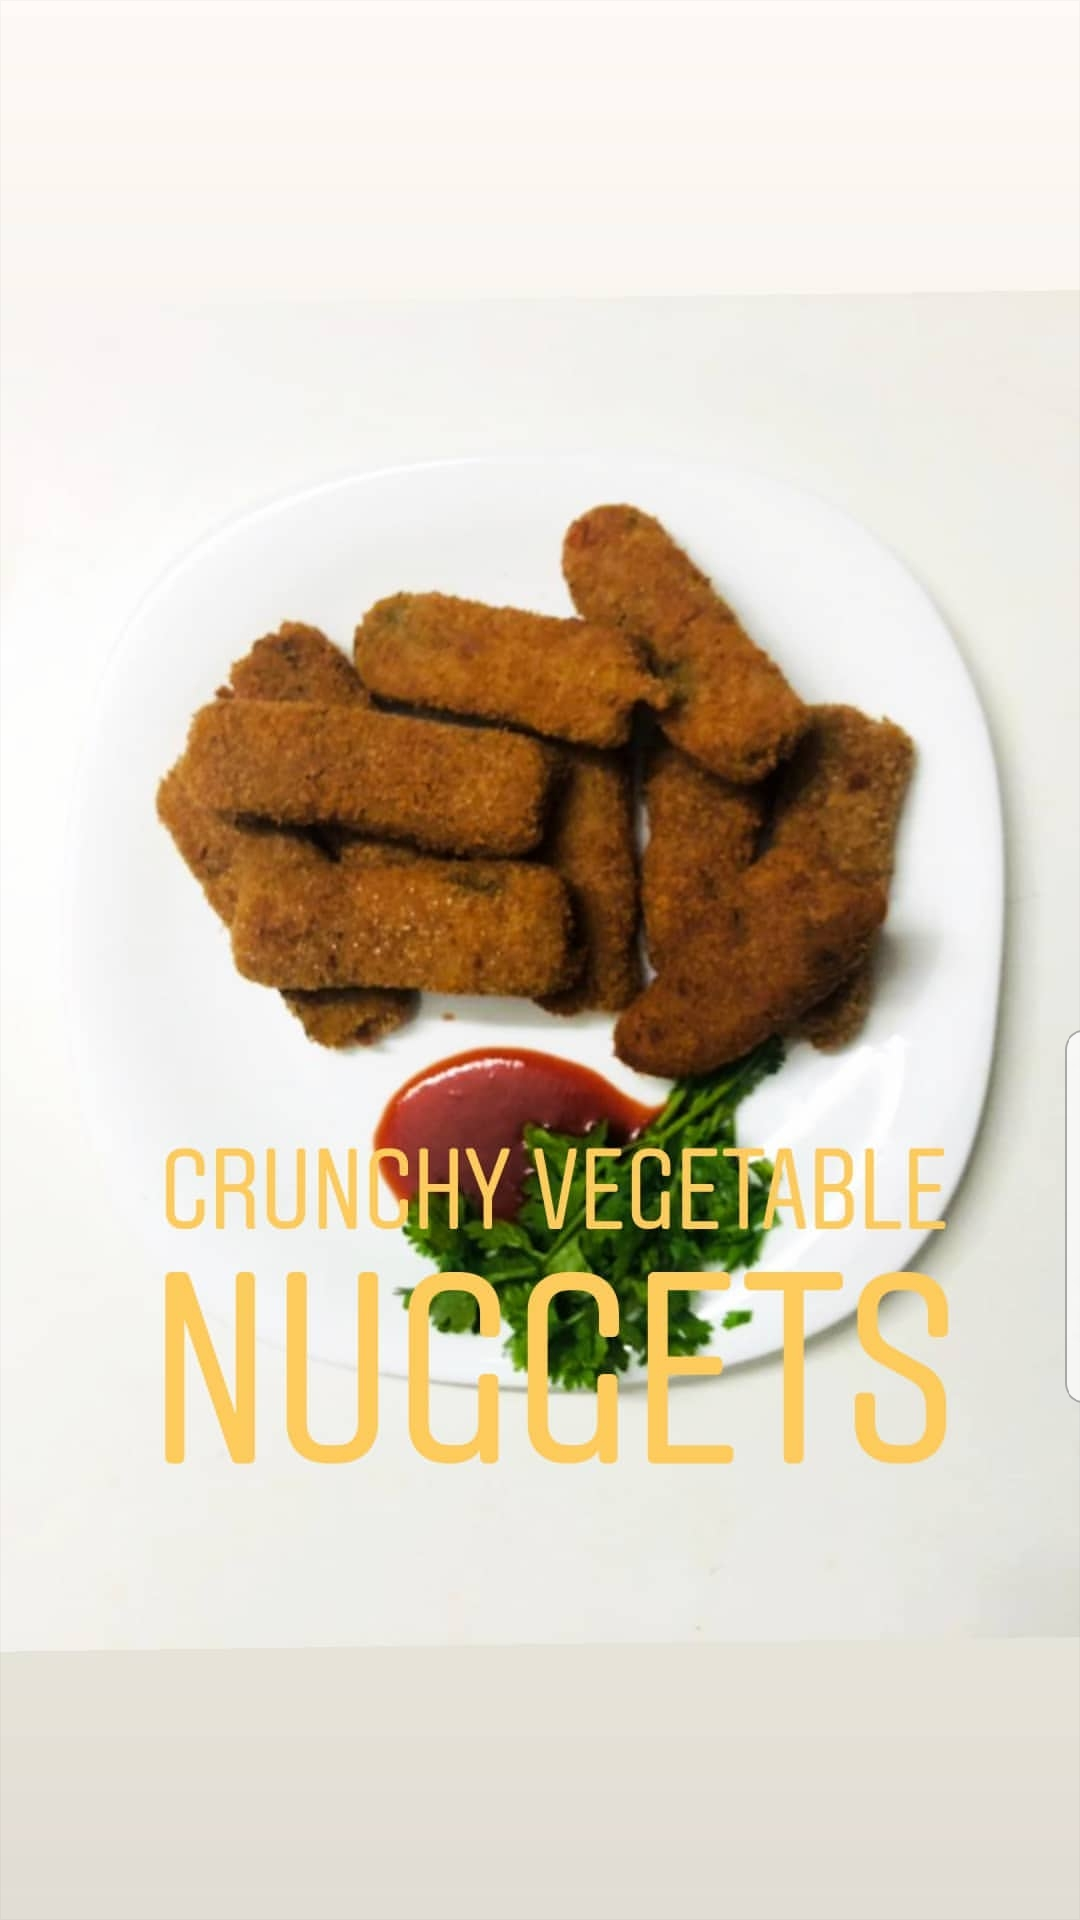 Crunchy Vegetable Nuggets